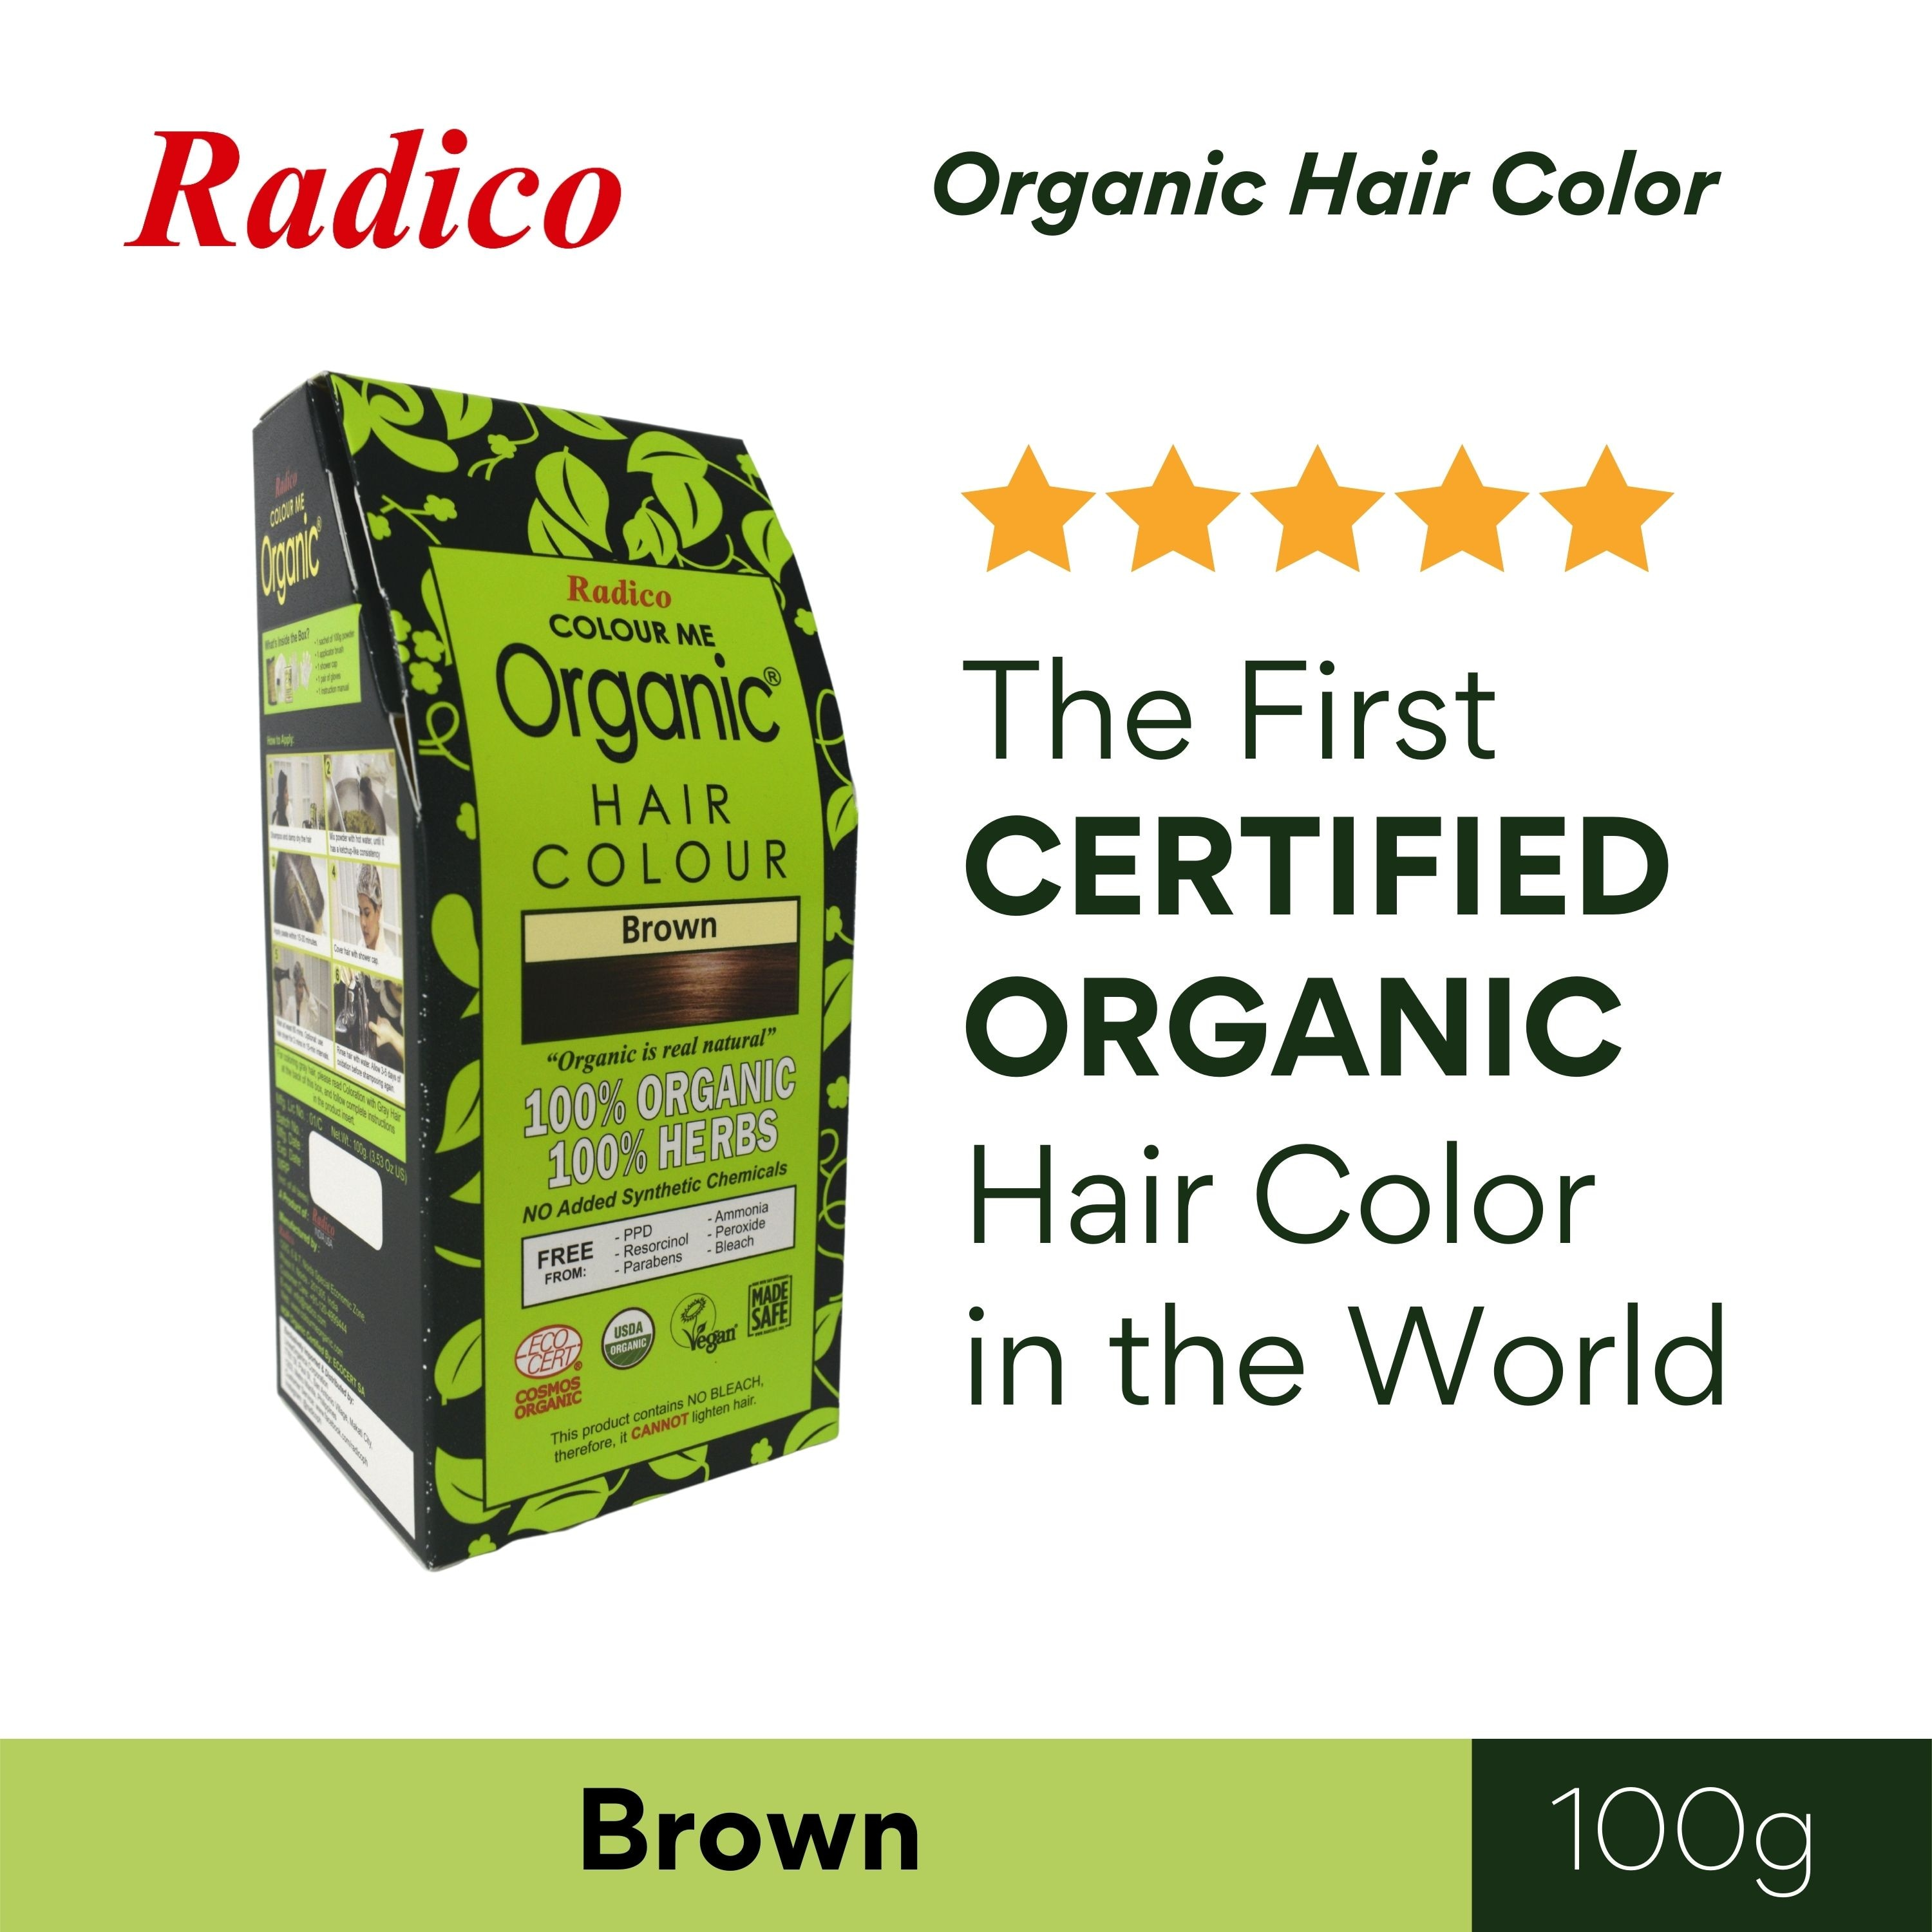 RADICOColour Me Organic Hair Color - Brown 100G,Natural Herbal/ OrganicGet 10% disc when you purchased minimum P500 worth of Health and Beauty products using COLLECT10